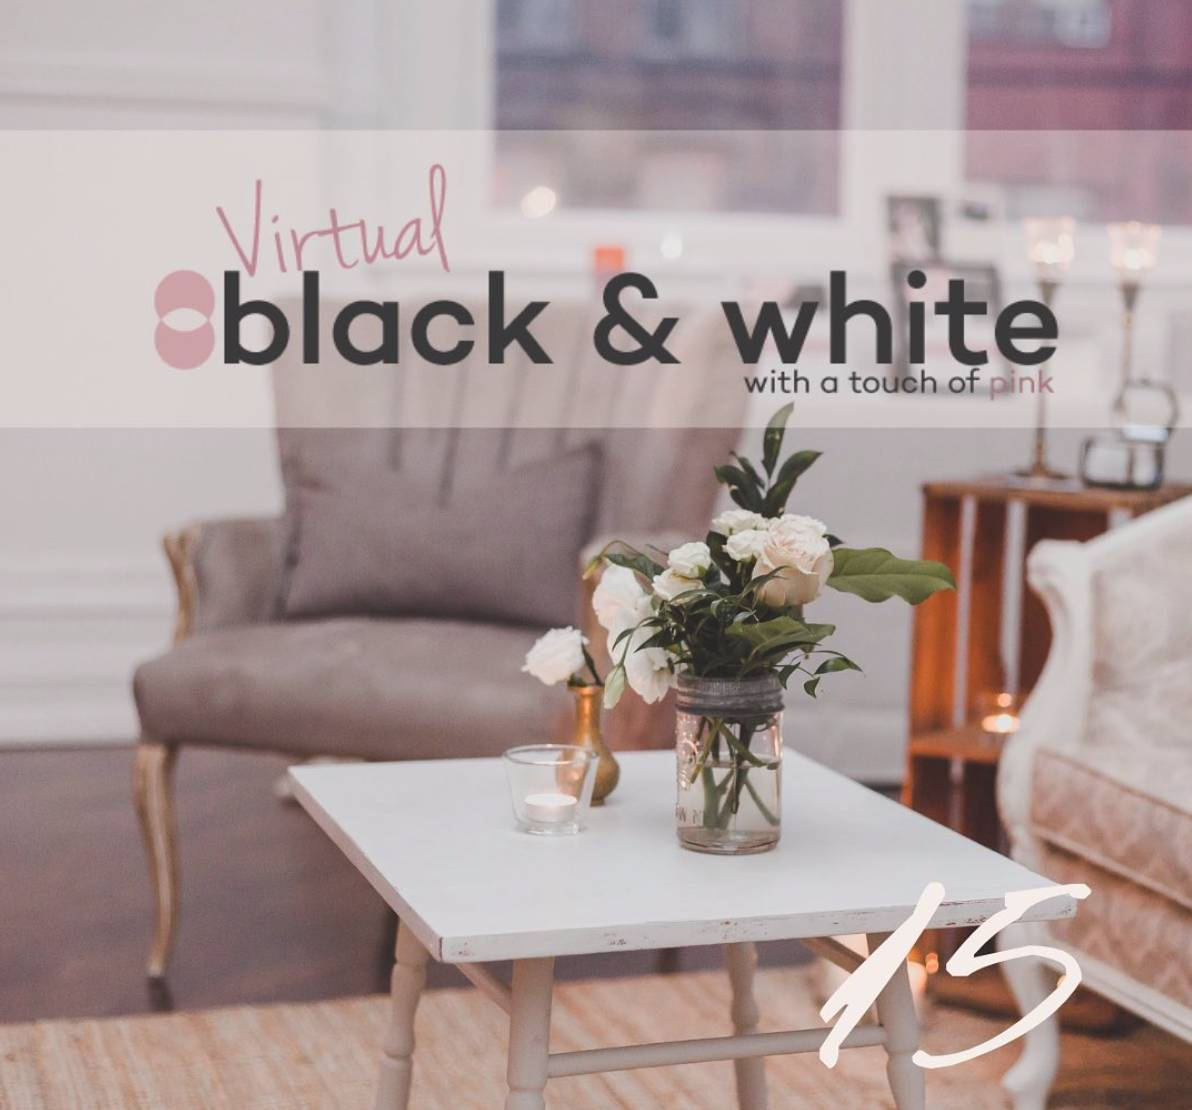 Join Pink Pearl Canada In Honouring World Cancer Day At This Virtual Black & White Event (With A Touch Of Pink!)